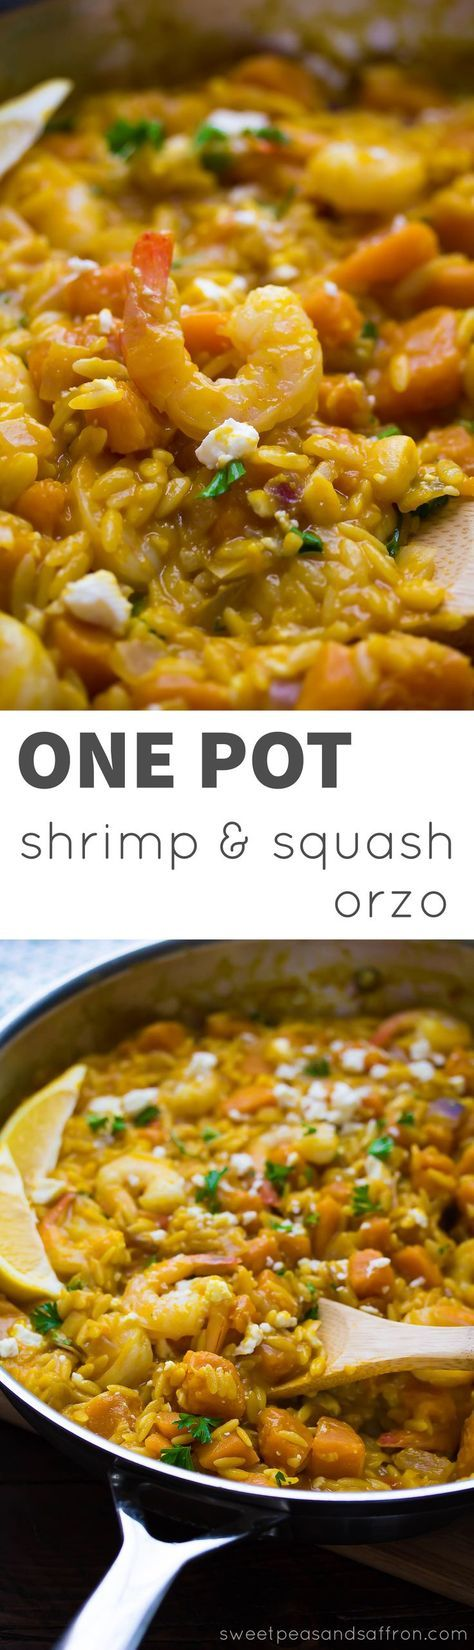 One Pot Shrimp and Squash Orzo, an easy and healthy dinner recipe with only one pan to wash up!